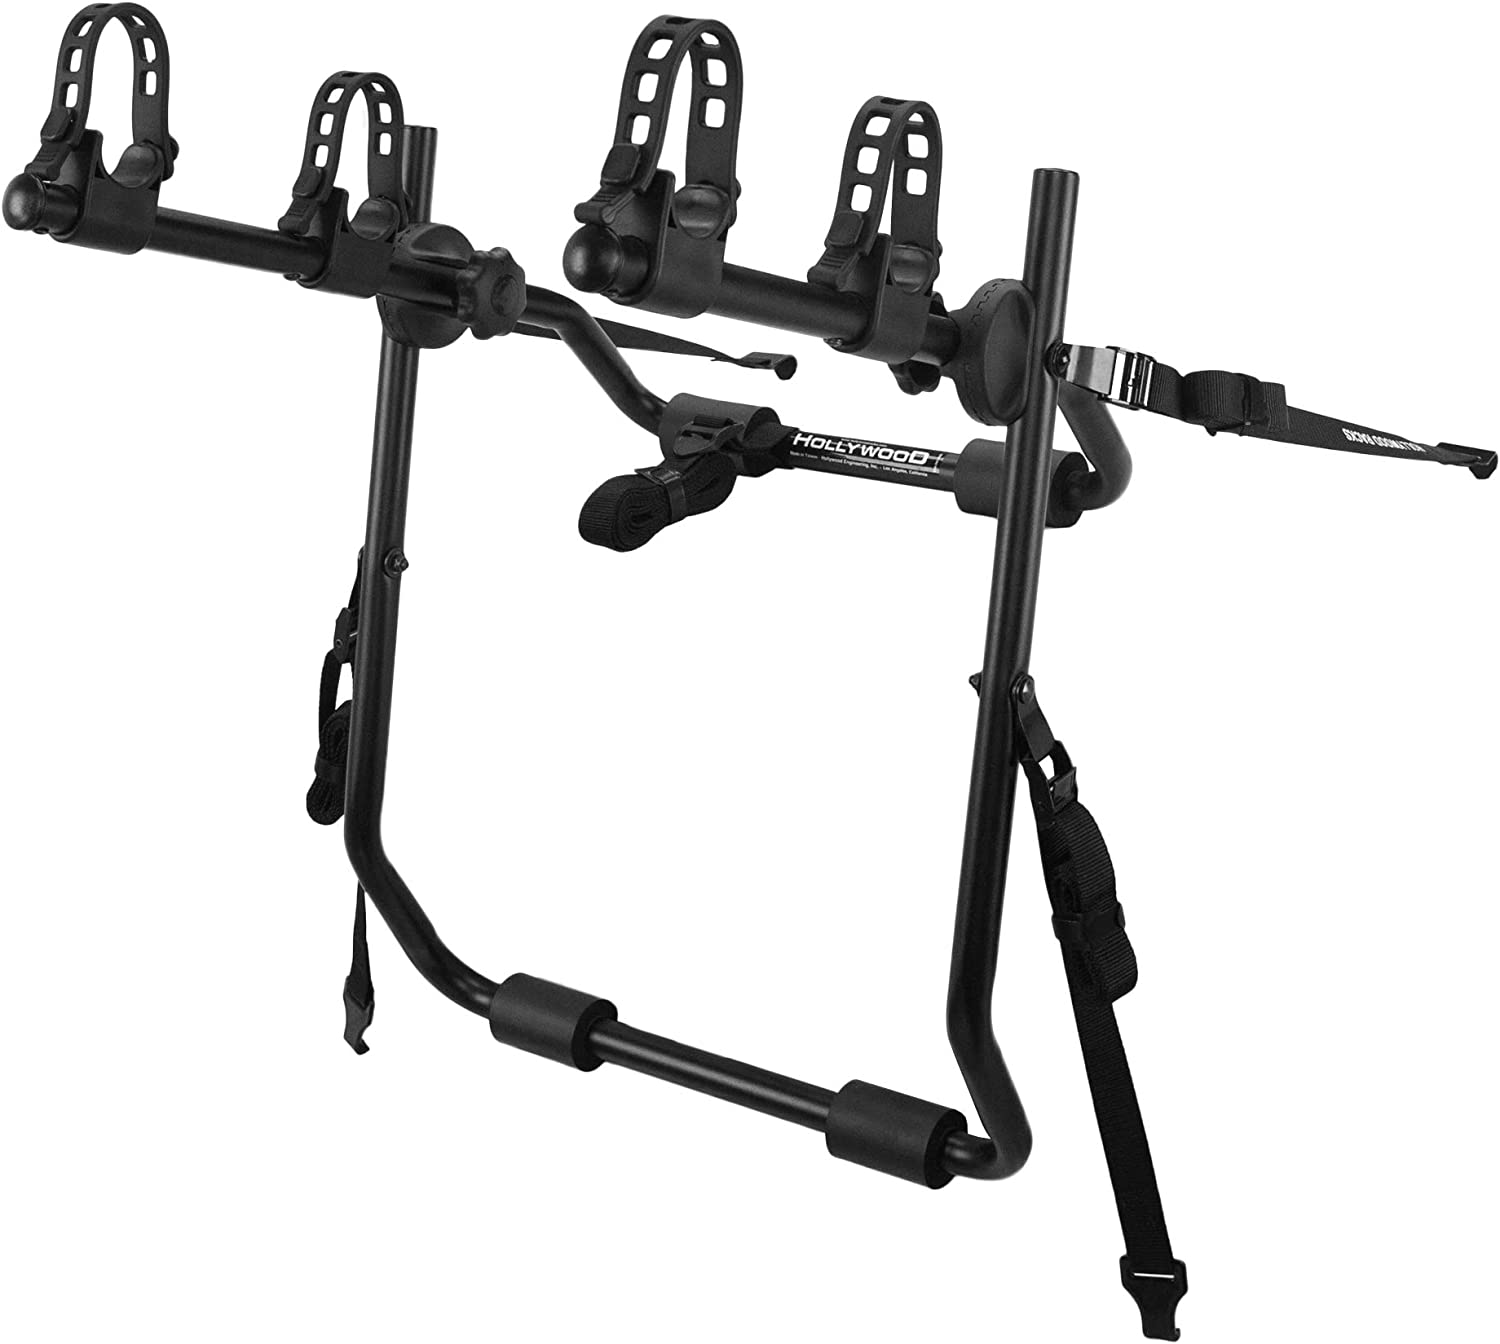 A close-up photo of a bike rack in black color with two bike holders.